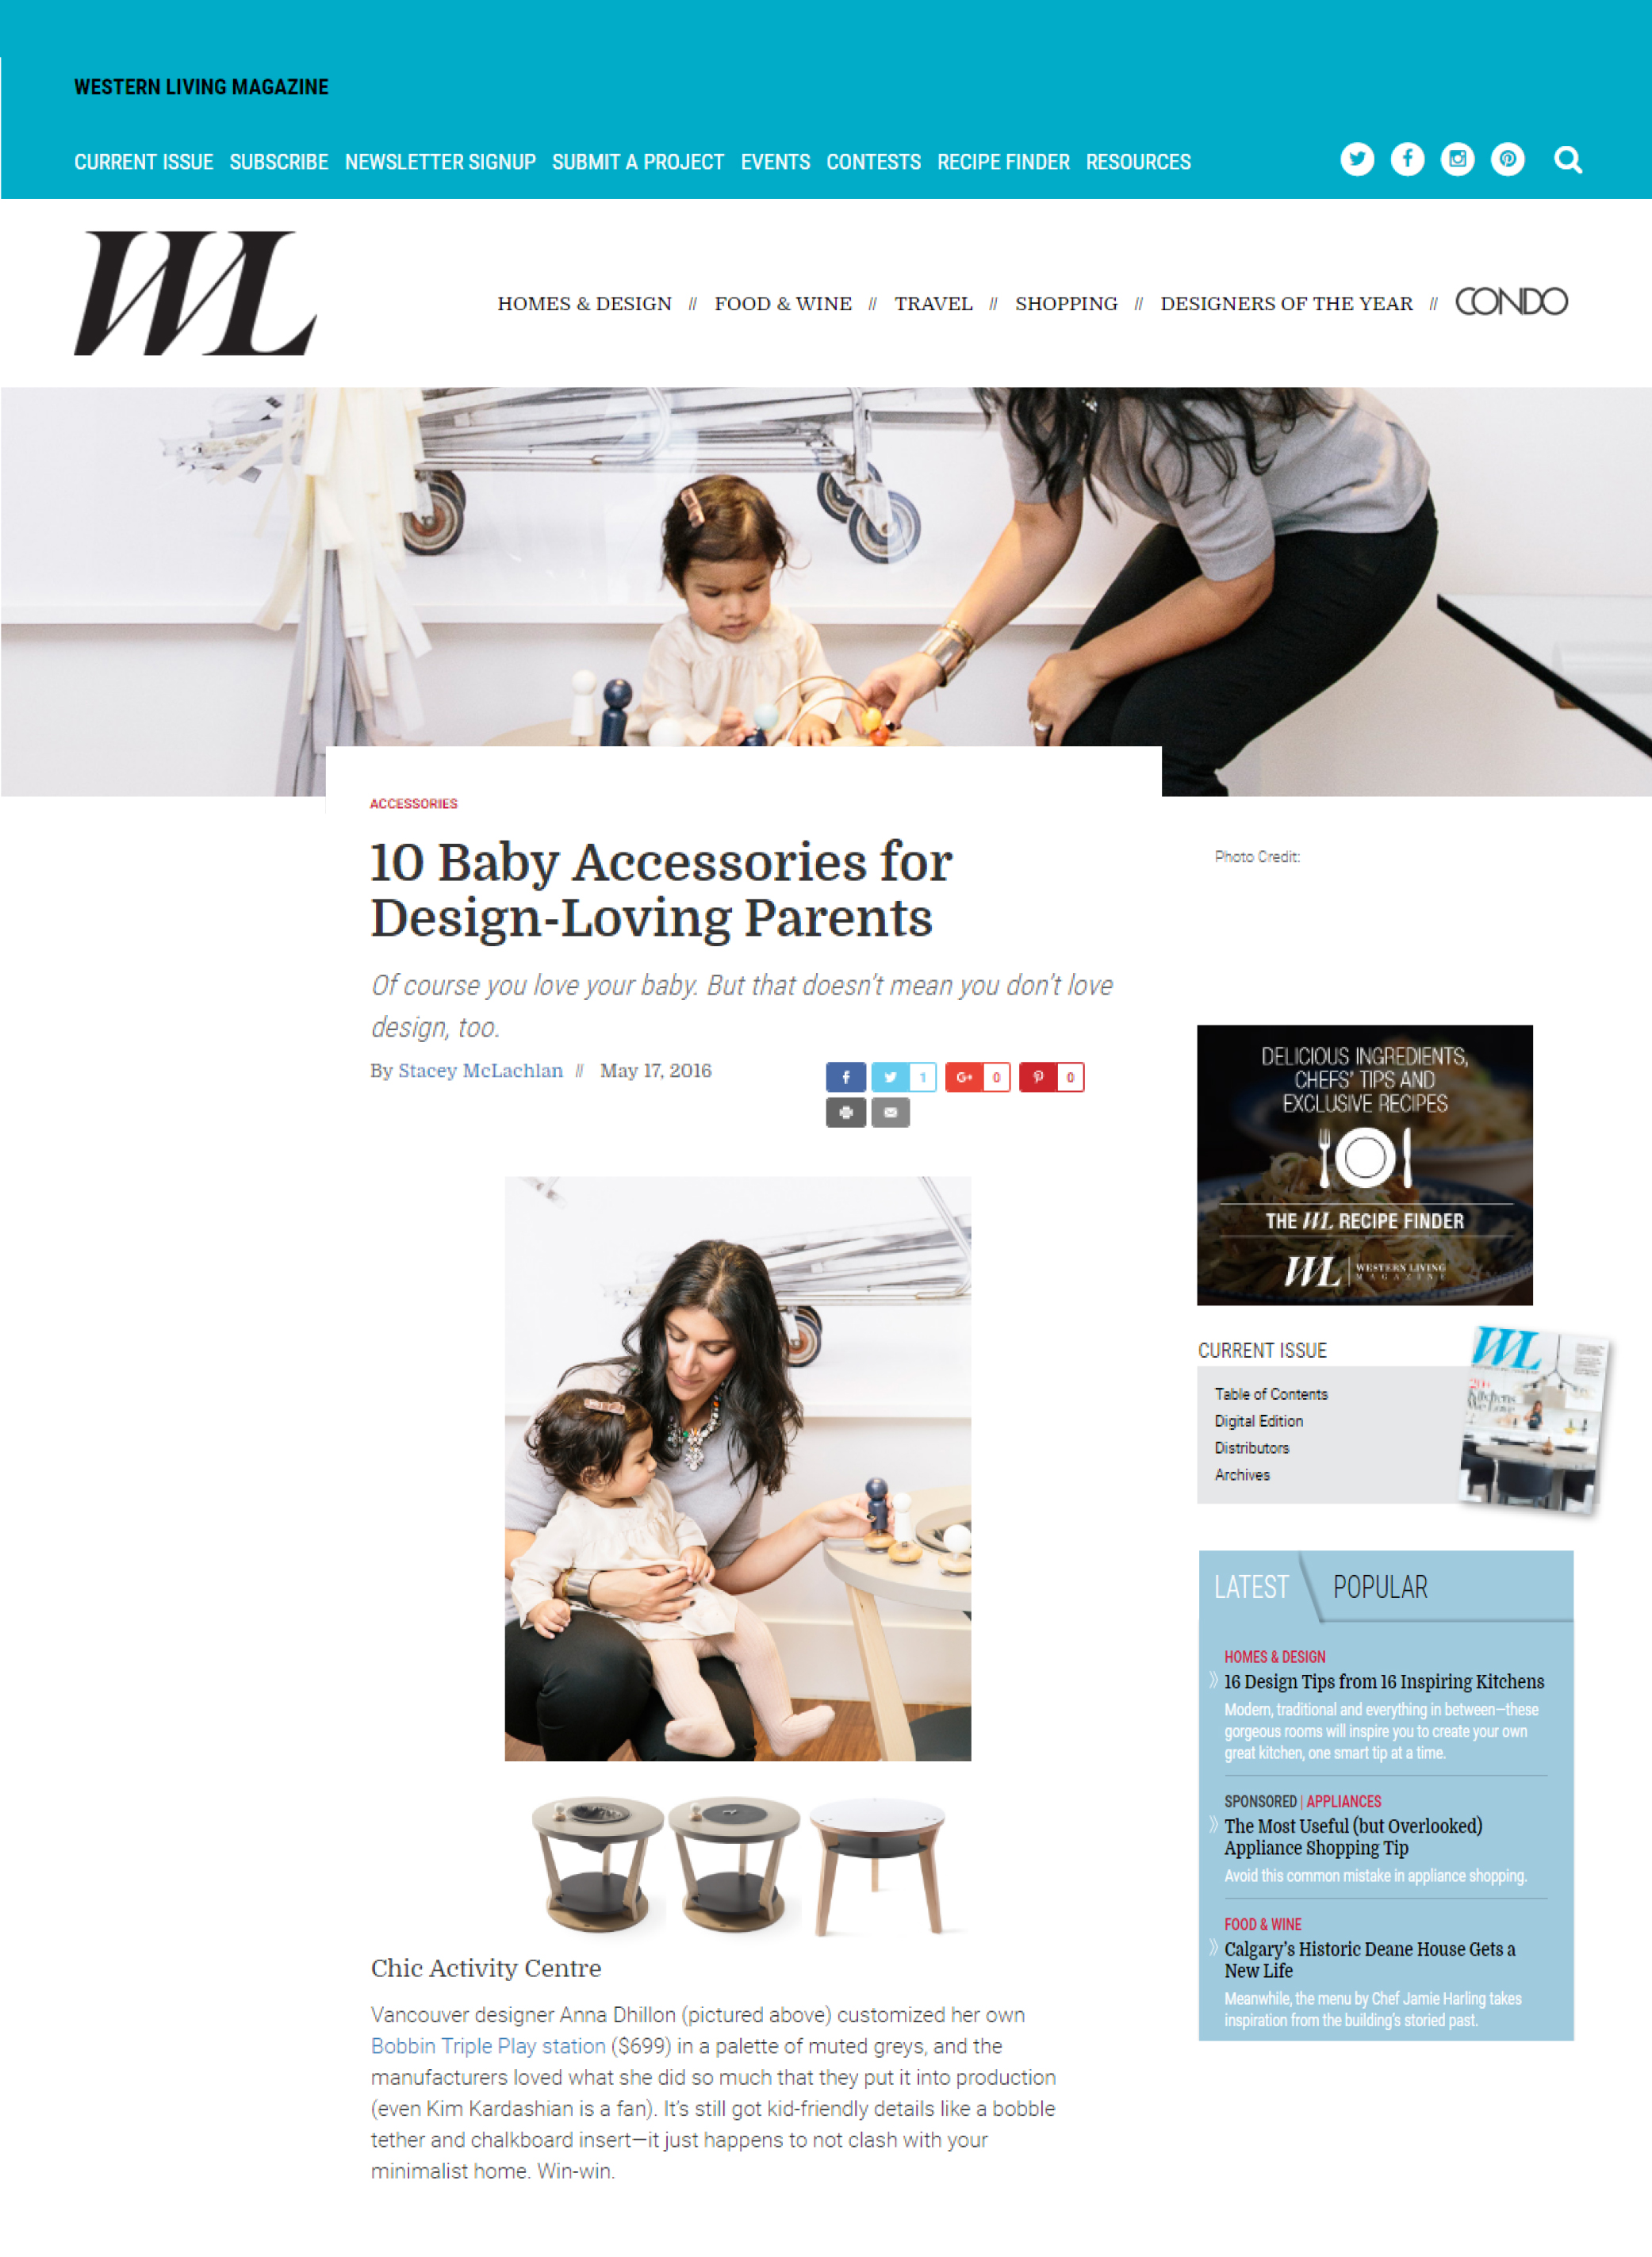 16_05-WLM-10_Baby_Accessories_for_Design_Loving_Parents.jpg